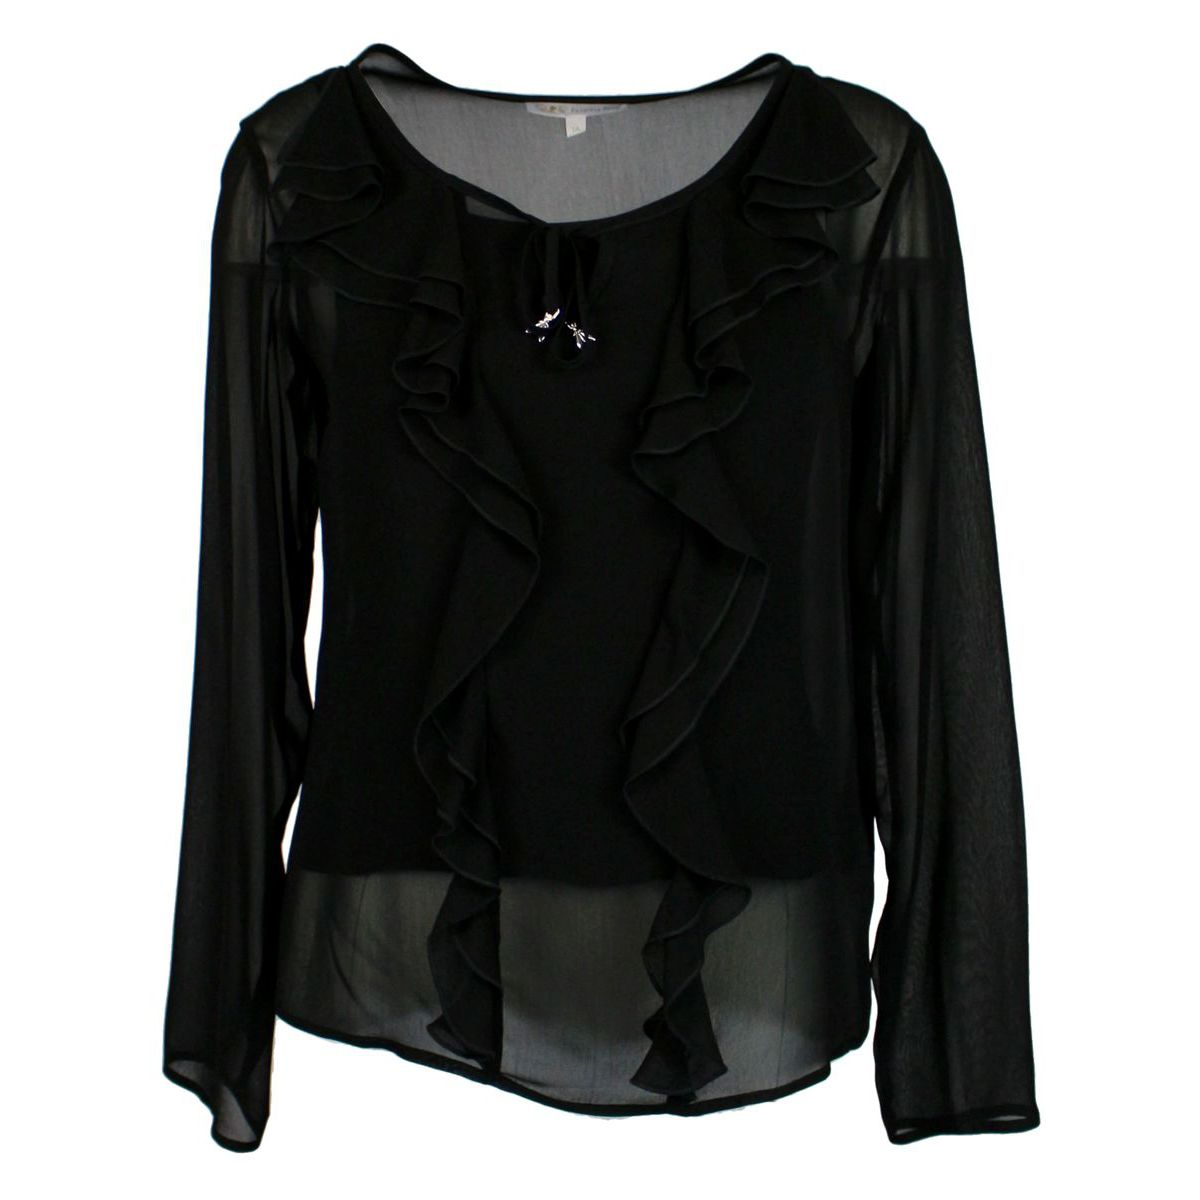 wide cut shirt with ruffles Black Patrizia Pepe